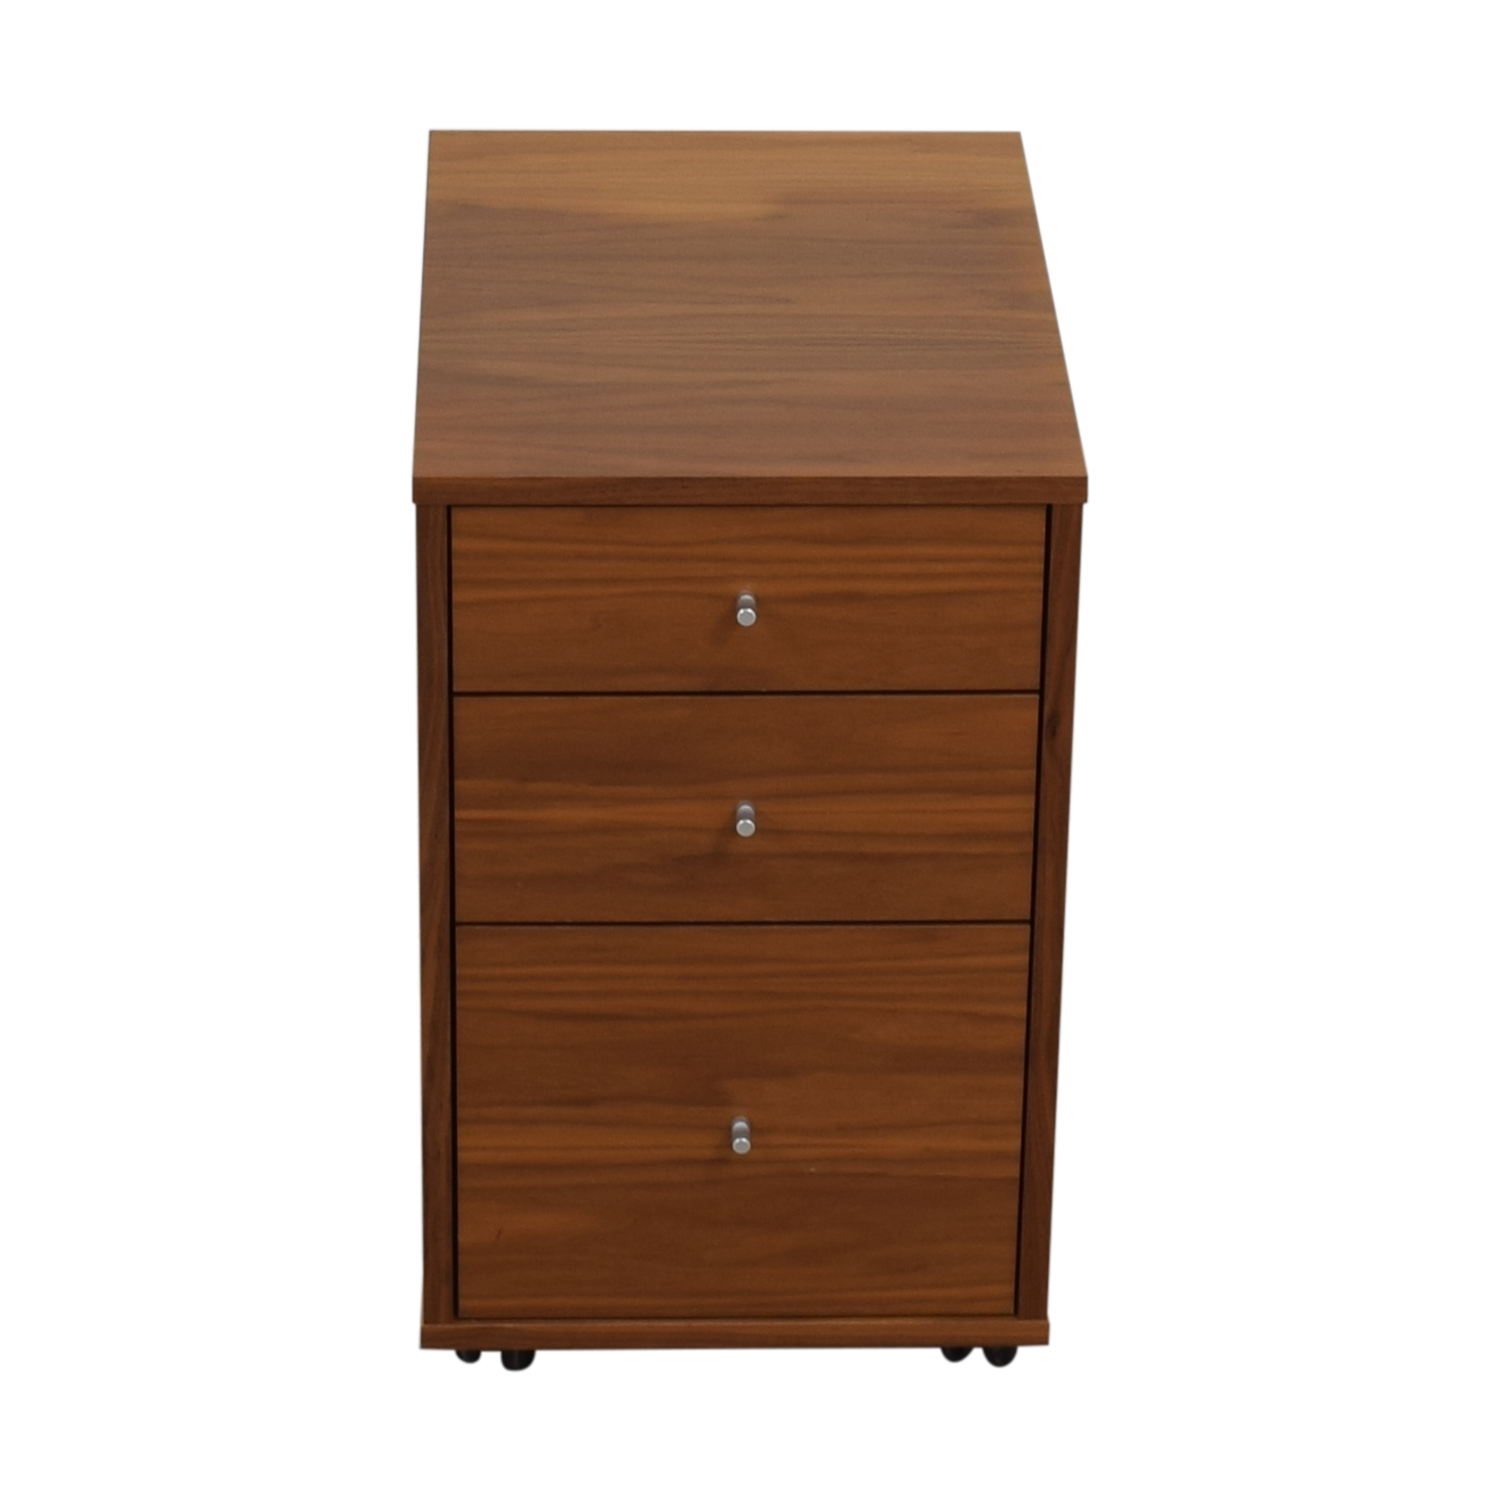 Room & Board Room & Board Sequel Rolling Three-Drawer File Cabinet price